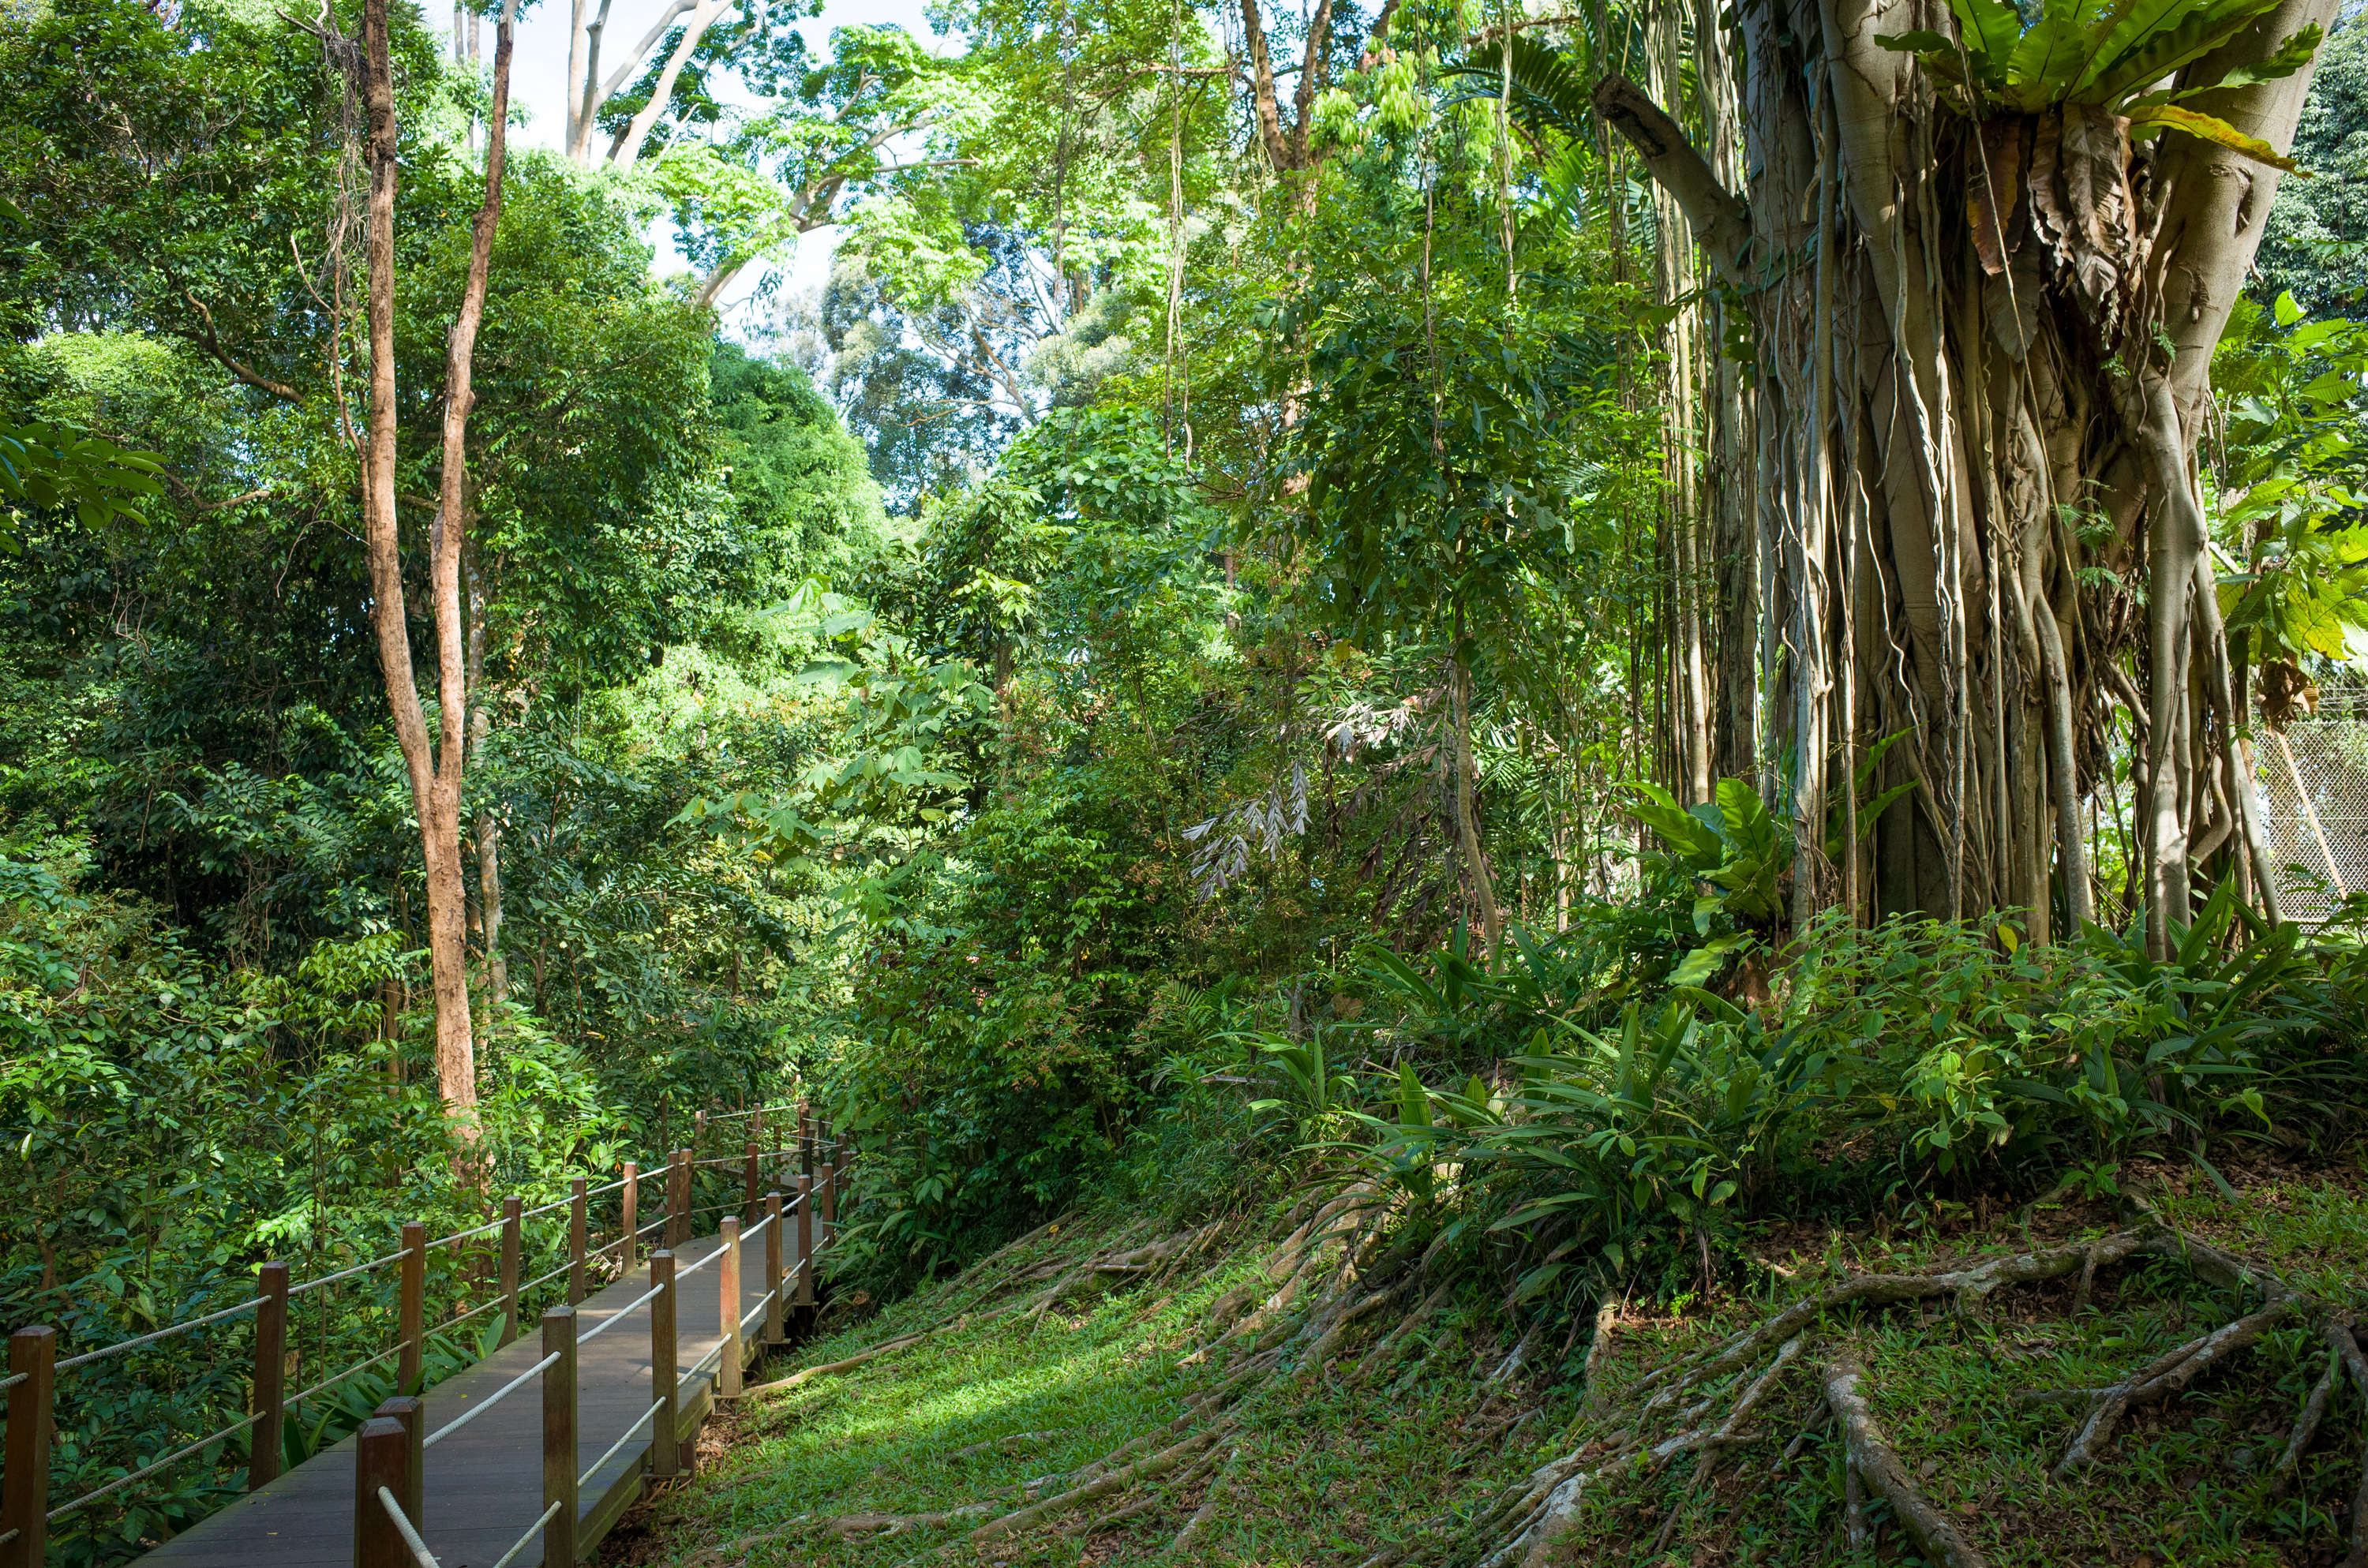 BUKIT TIMAH - Tyersall Learning Forest  - EDGEPROP SINGAPORE